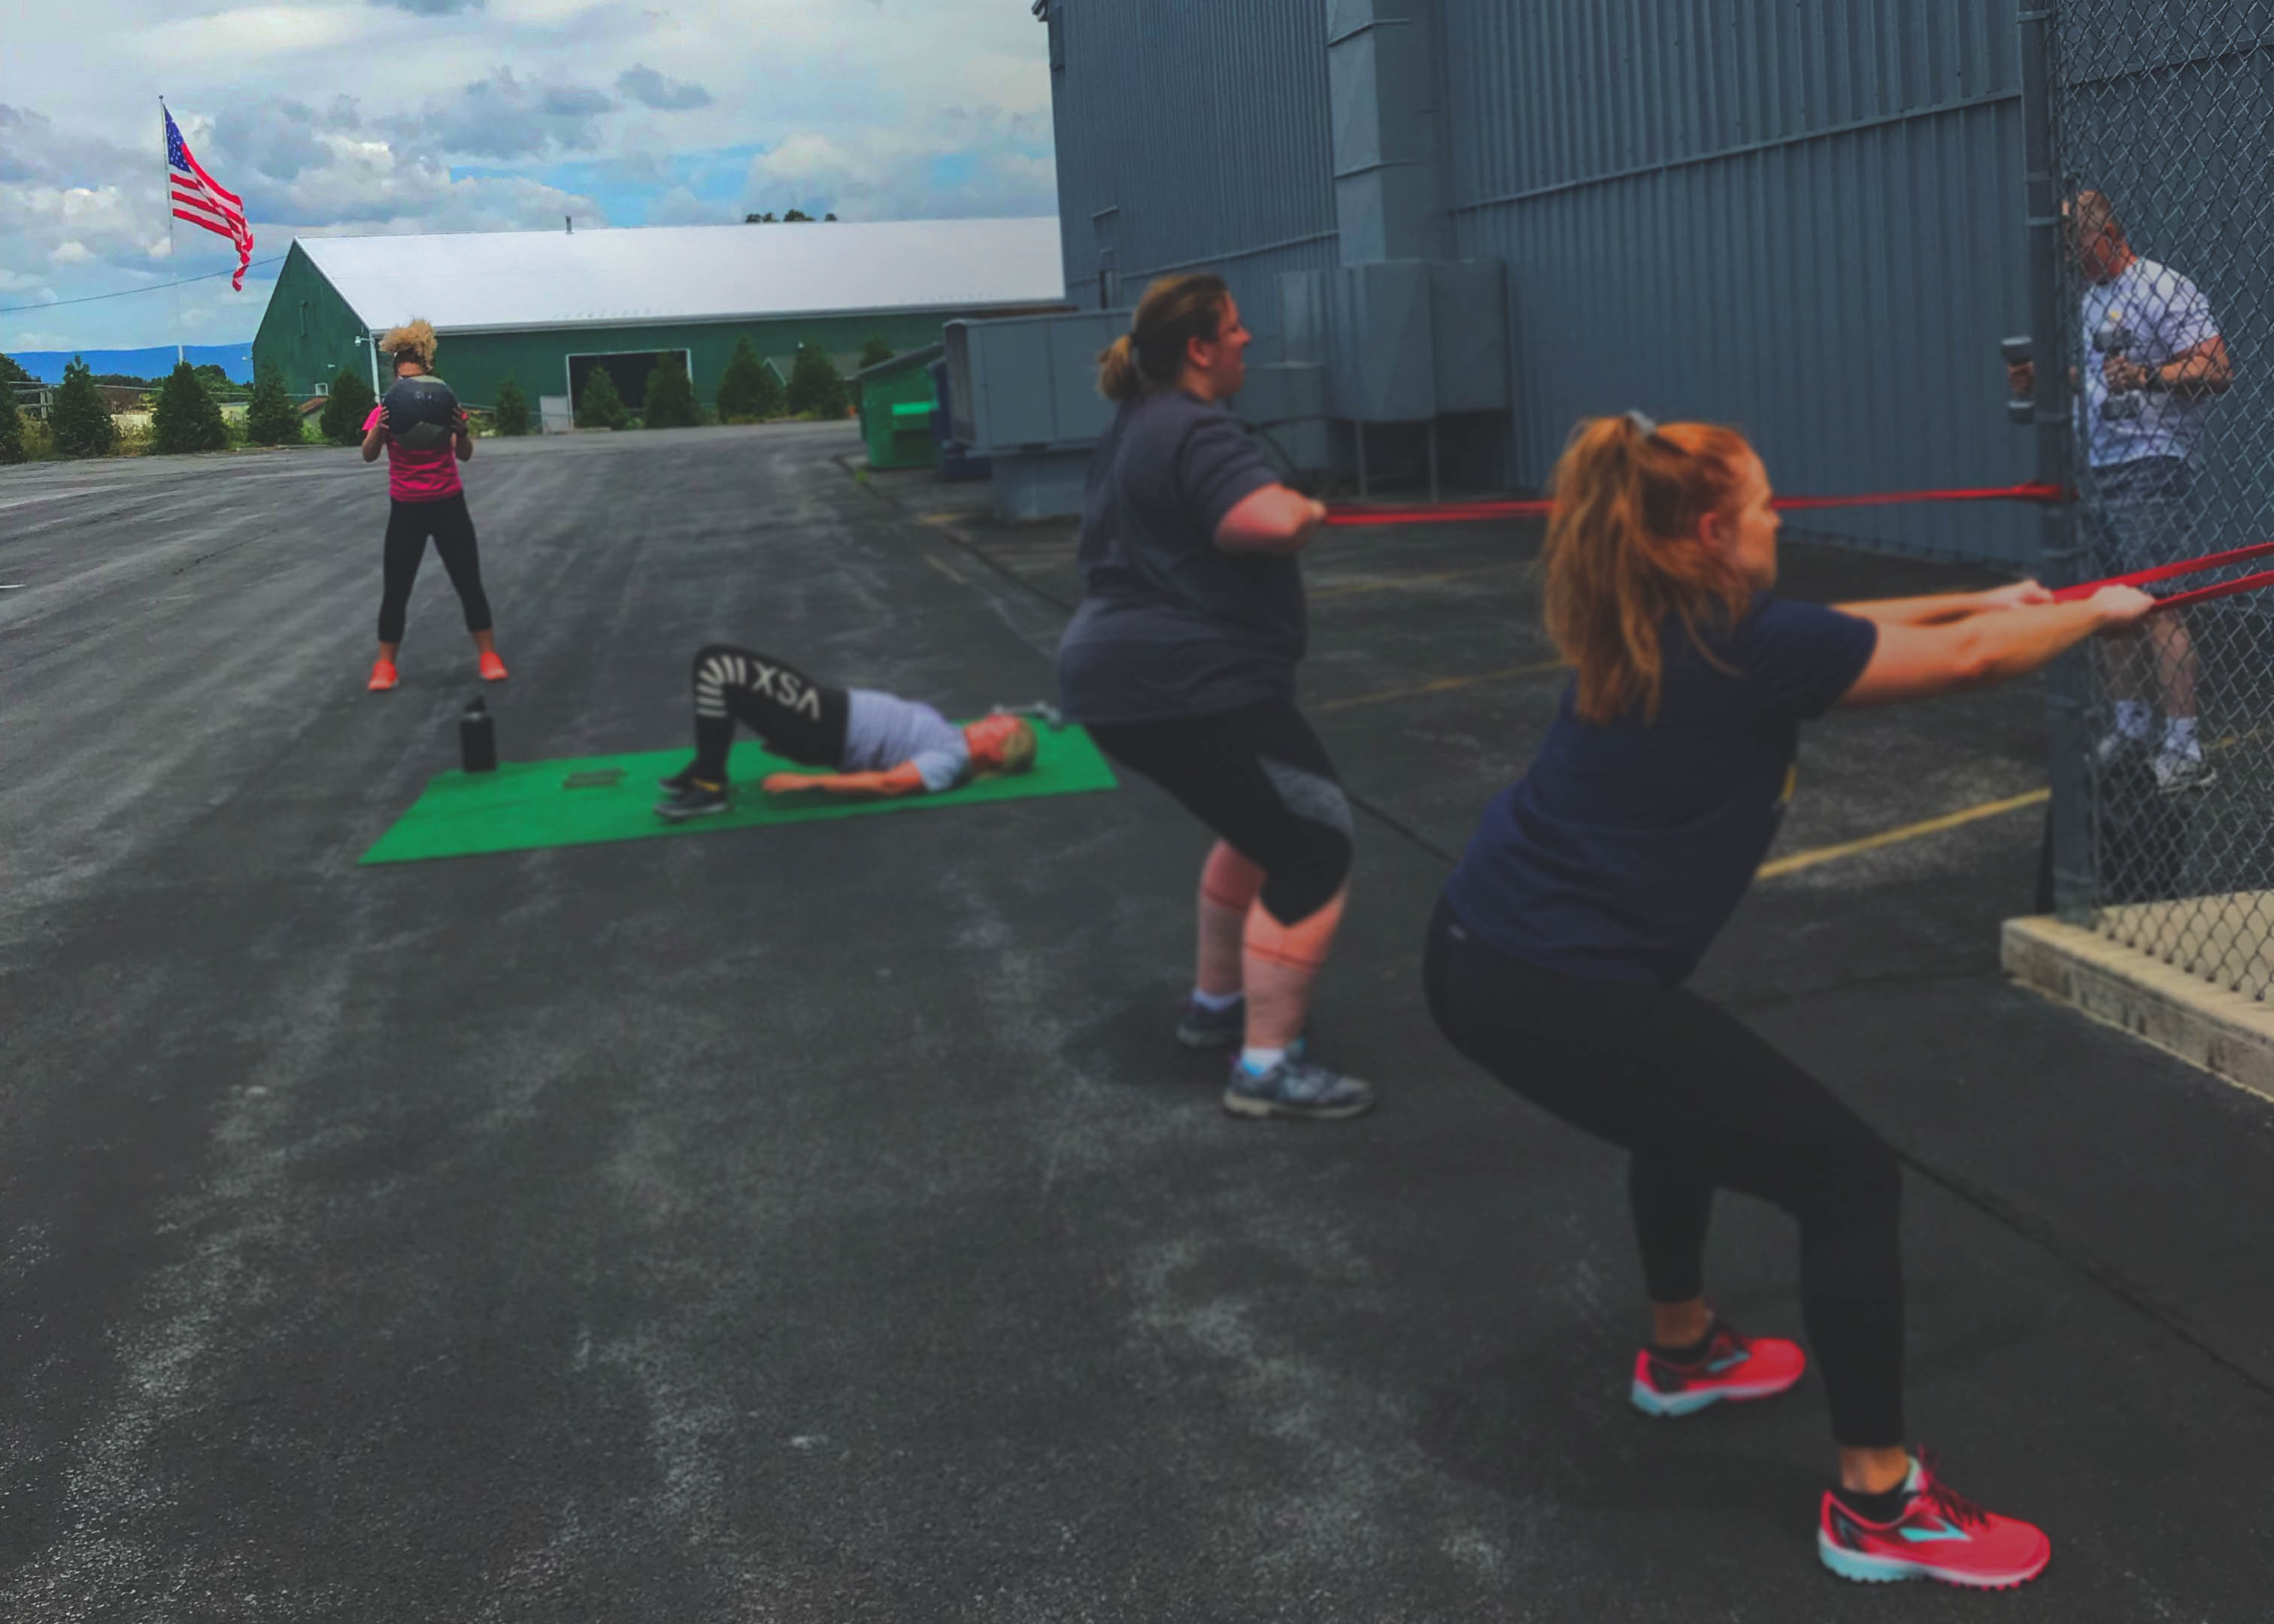 Five people working out